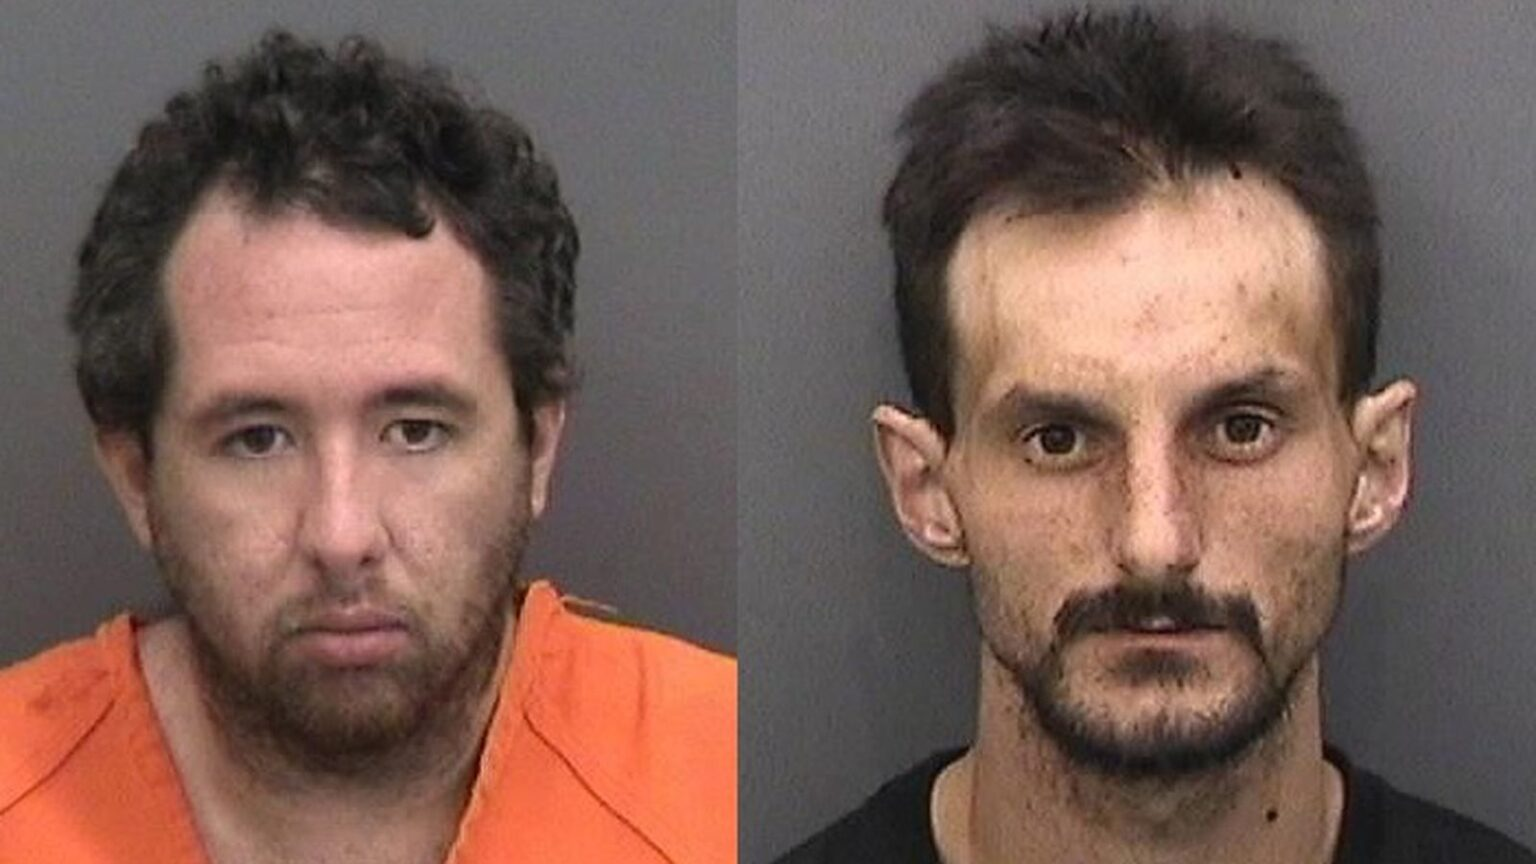 War on law enforcement: Two men arrested for setting fire to a police car in synagogue parking lot